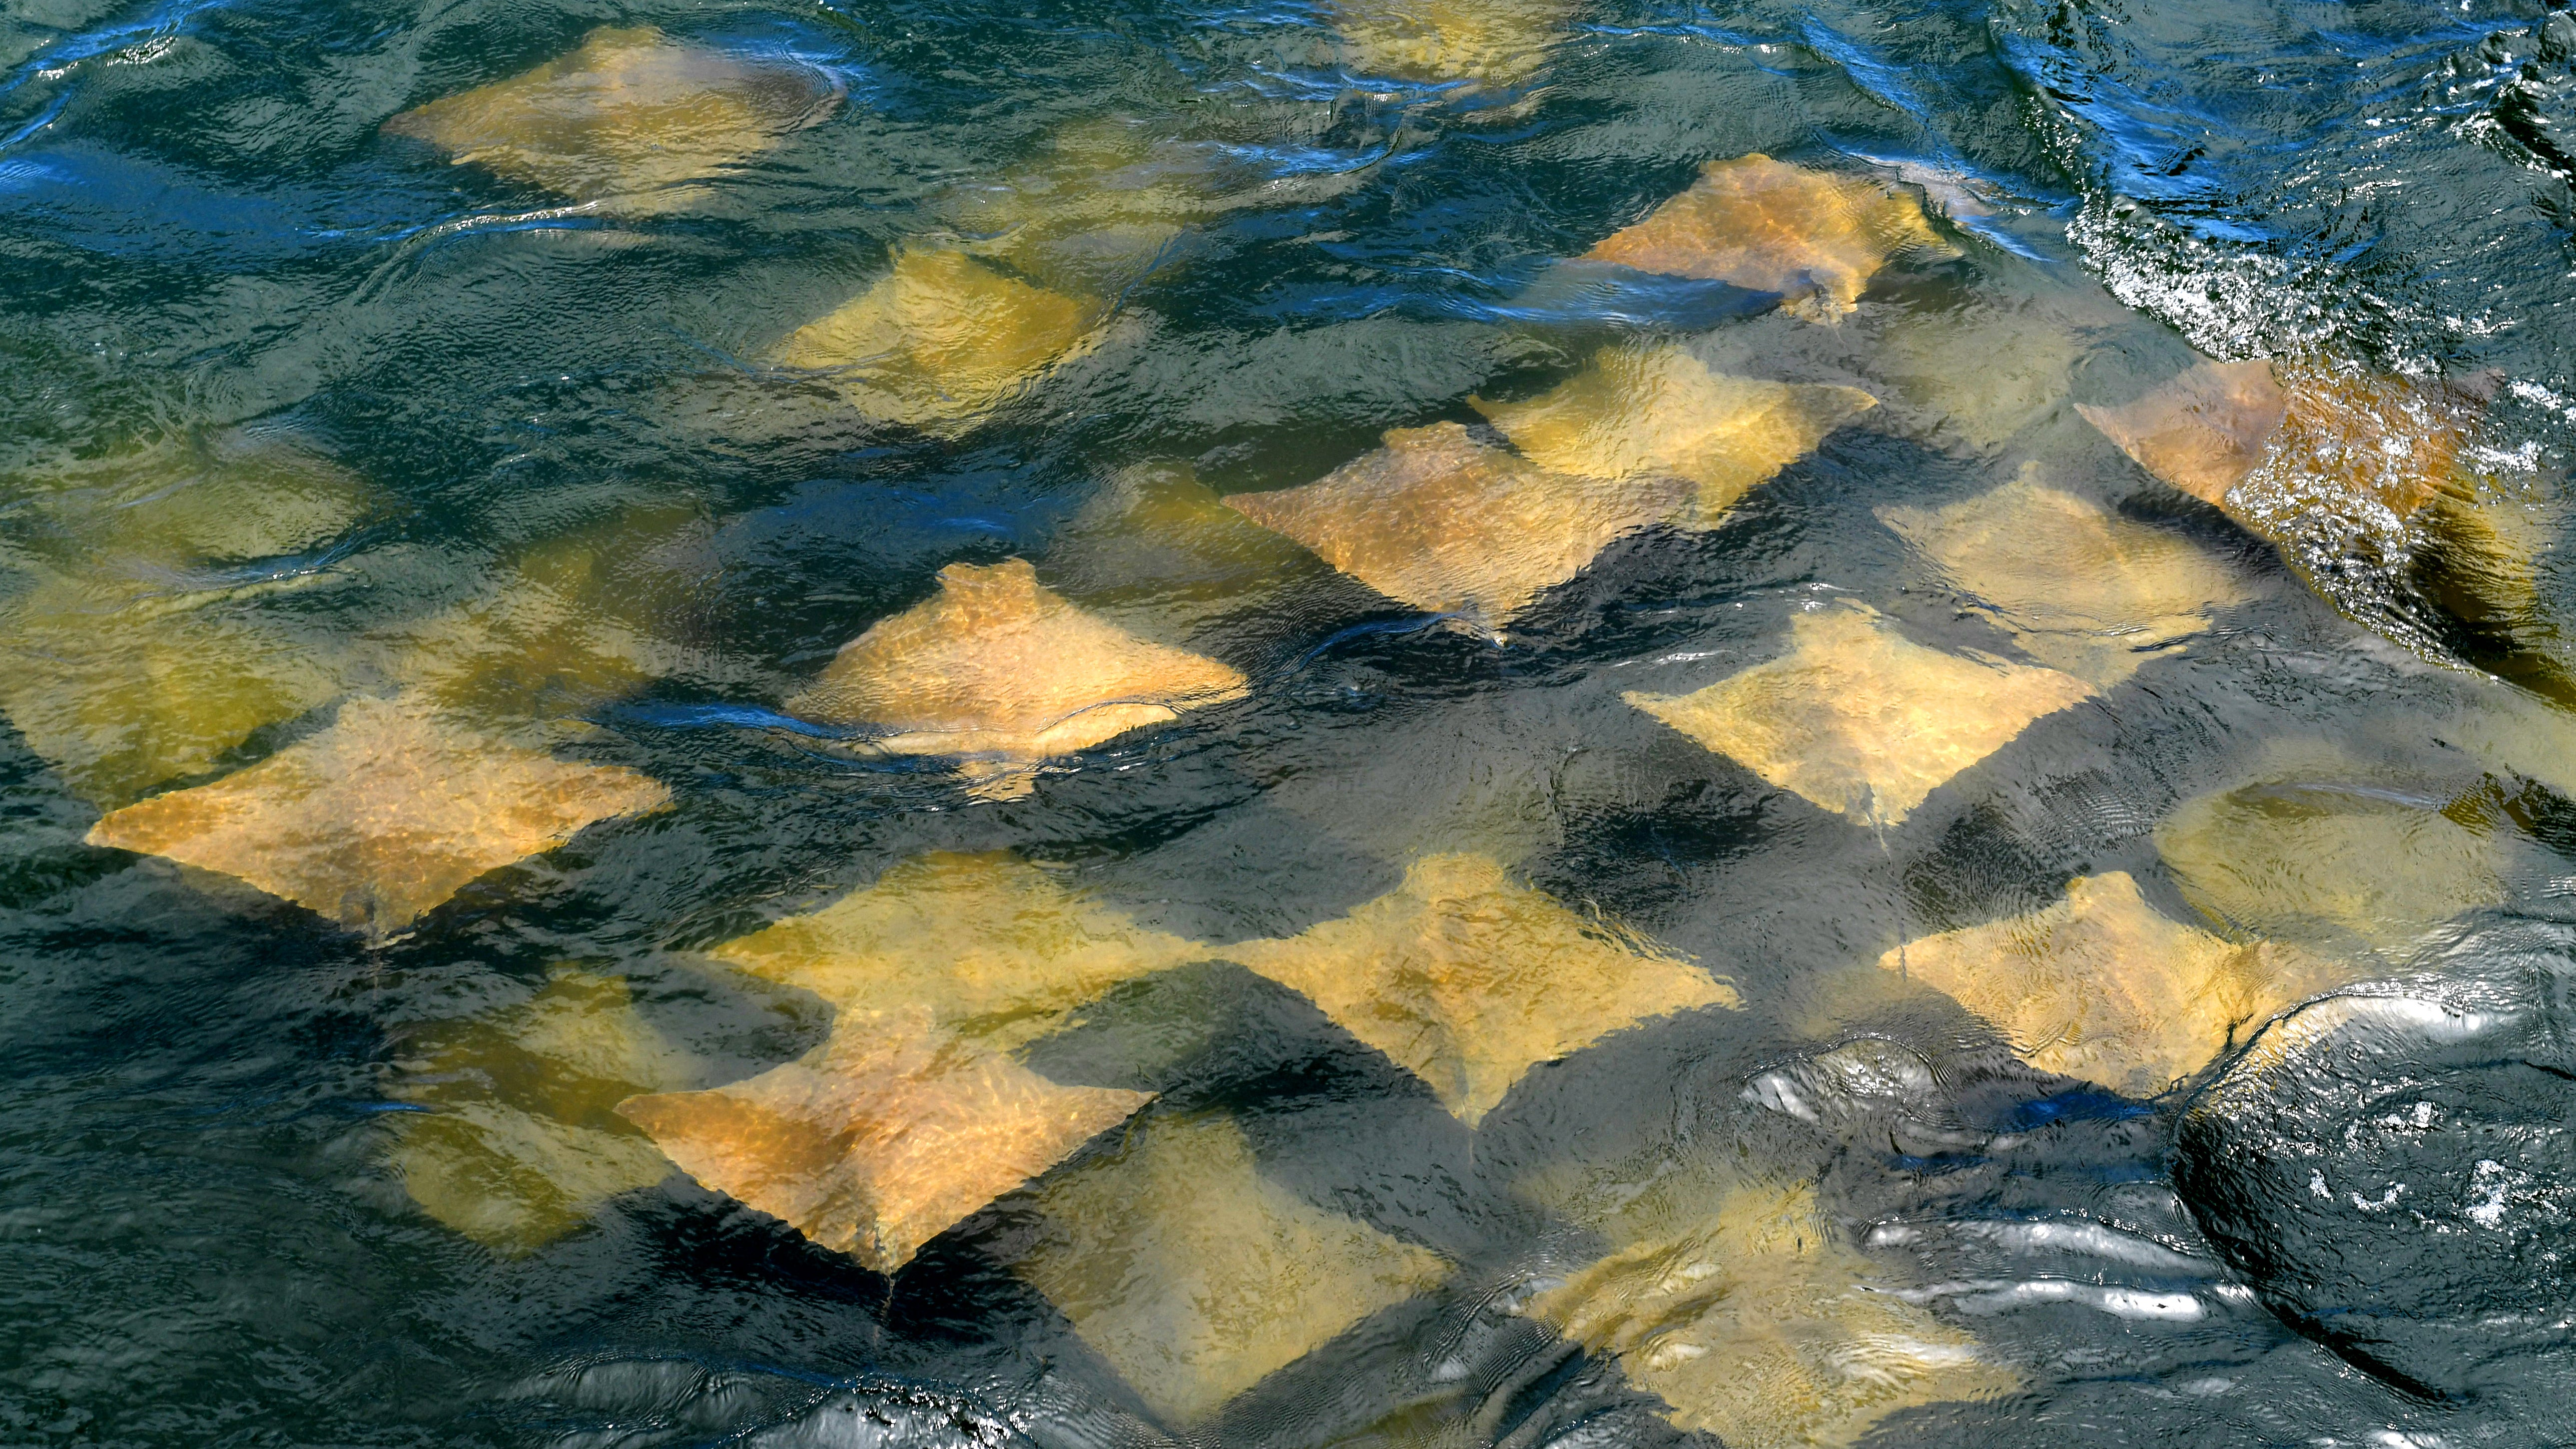 Adding to the biodiversity to the region, a fever of cownose rays glide through the rushing water under the bridge of Sebastian Inlet State Park on Tuesday, Aug. 20, 2019. The rays get their name from the distinct lobes on the front of their body that resemble a cowÕs nose. Often, cownose rays are seen swimming just beneath the surface. Unlike other rays, they rarely rest on the bottom of the ocean, minimizing the potential to harm humans.